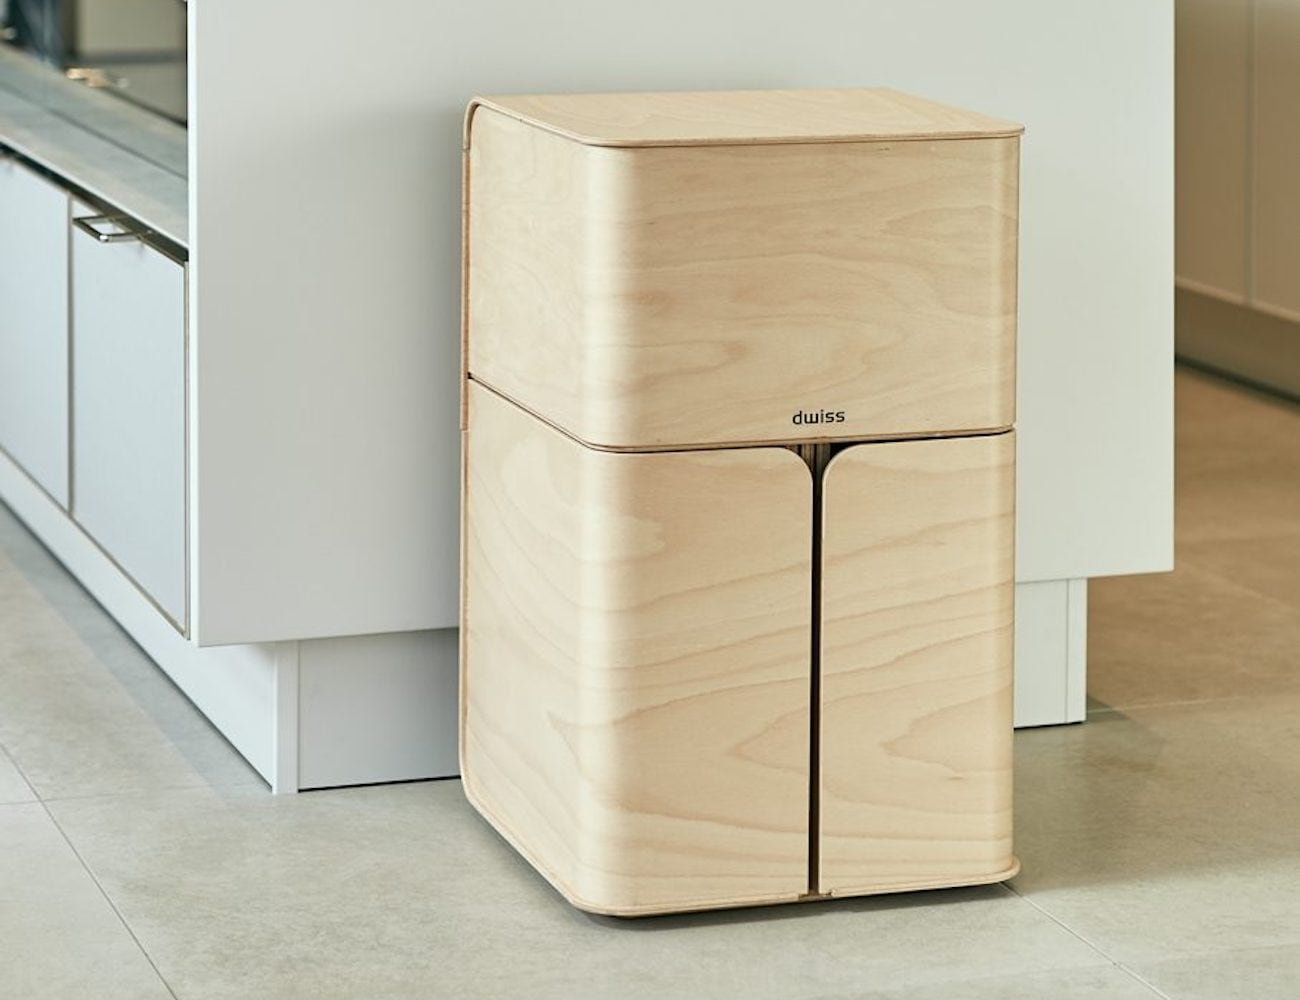 Paul Timmer Dwiss Elegant Recycling System organizes your trash in style